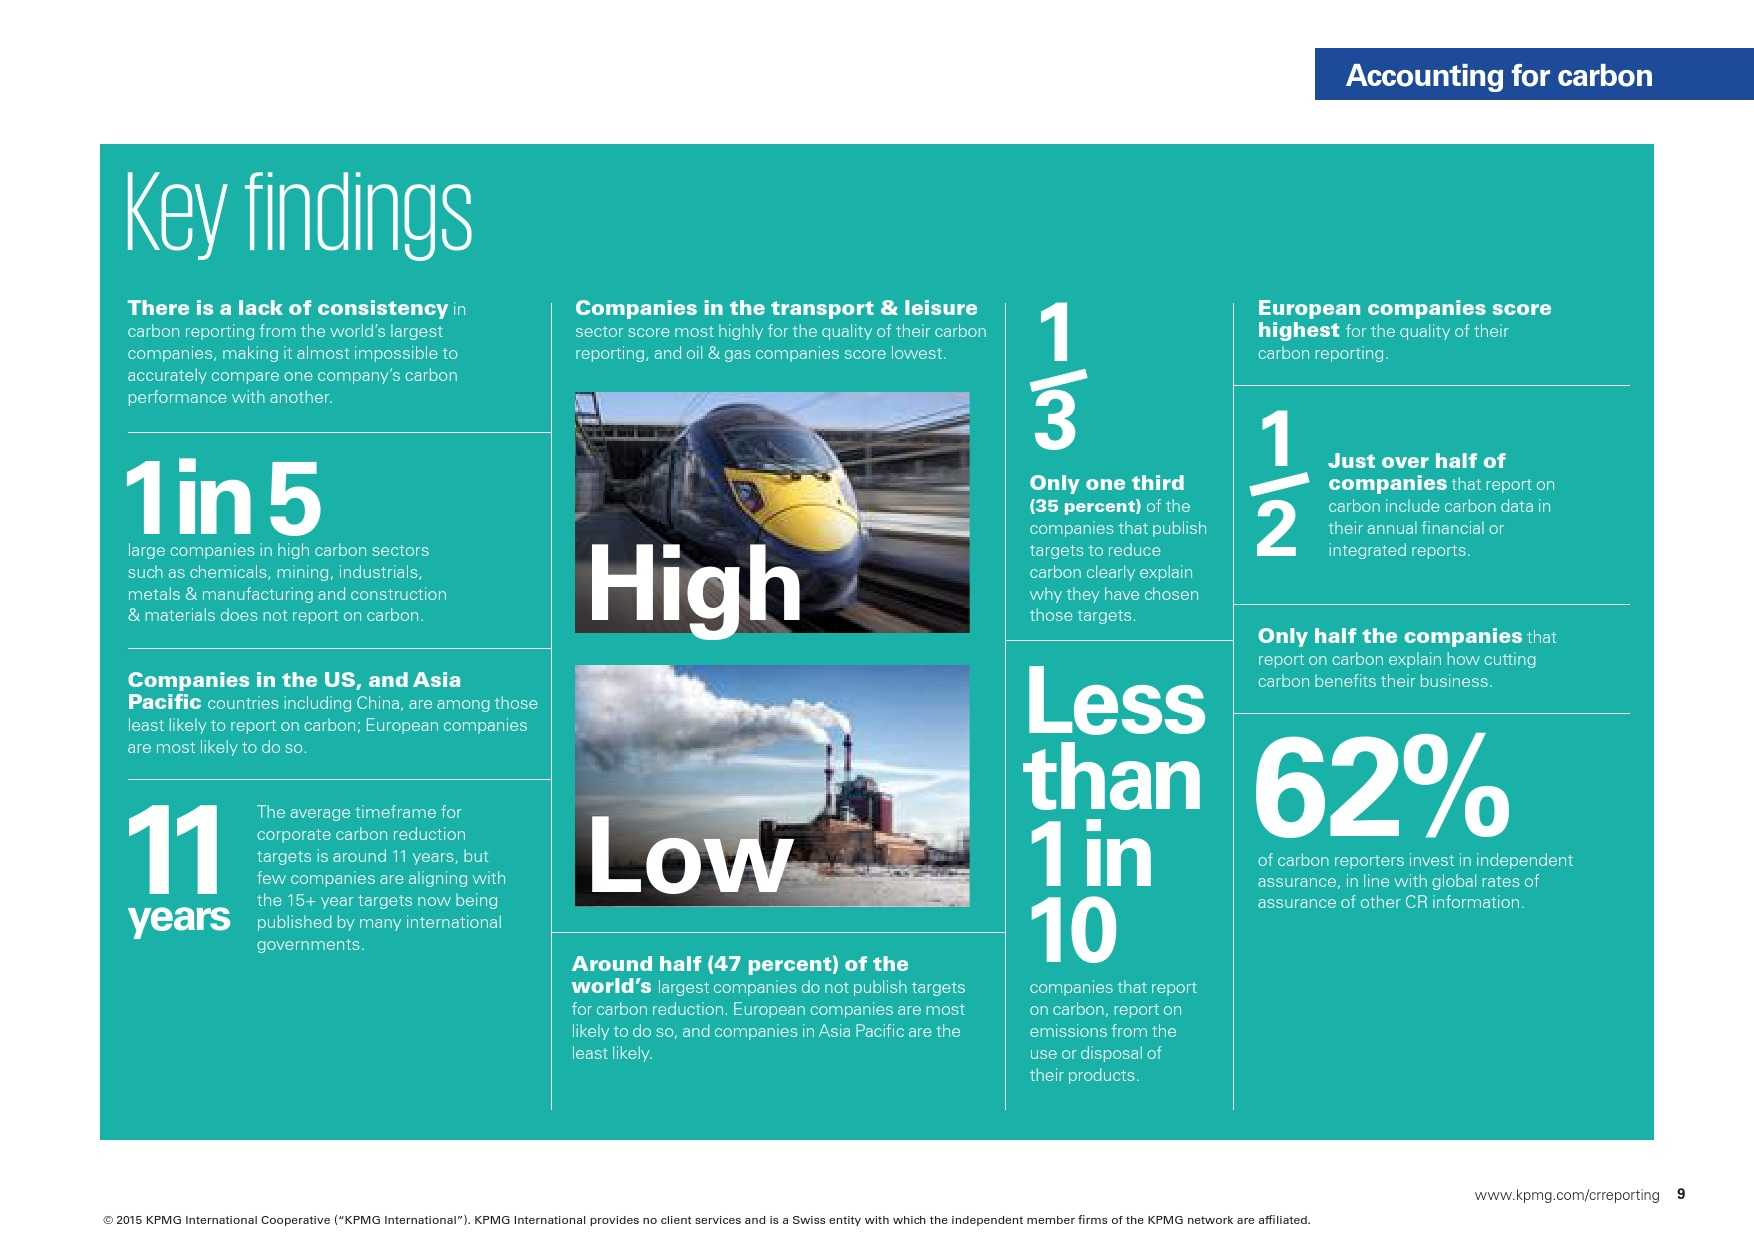 kpmg-international-survey-of-corporate-responsibility-reporting-2015_000009